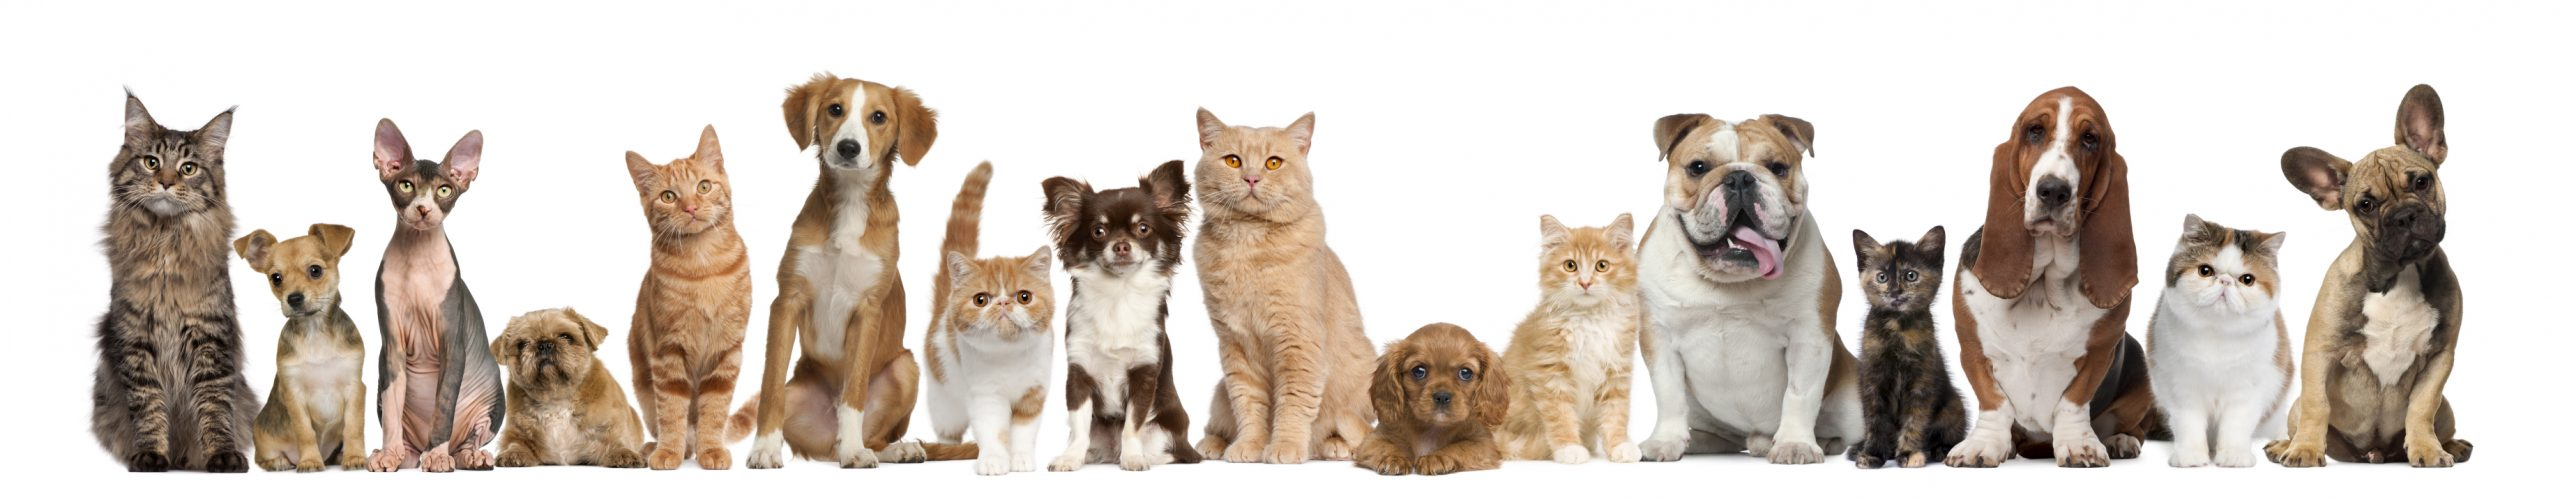 Image of pets together eagerly waiting for Go For Raw meals